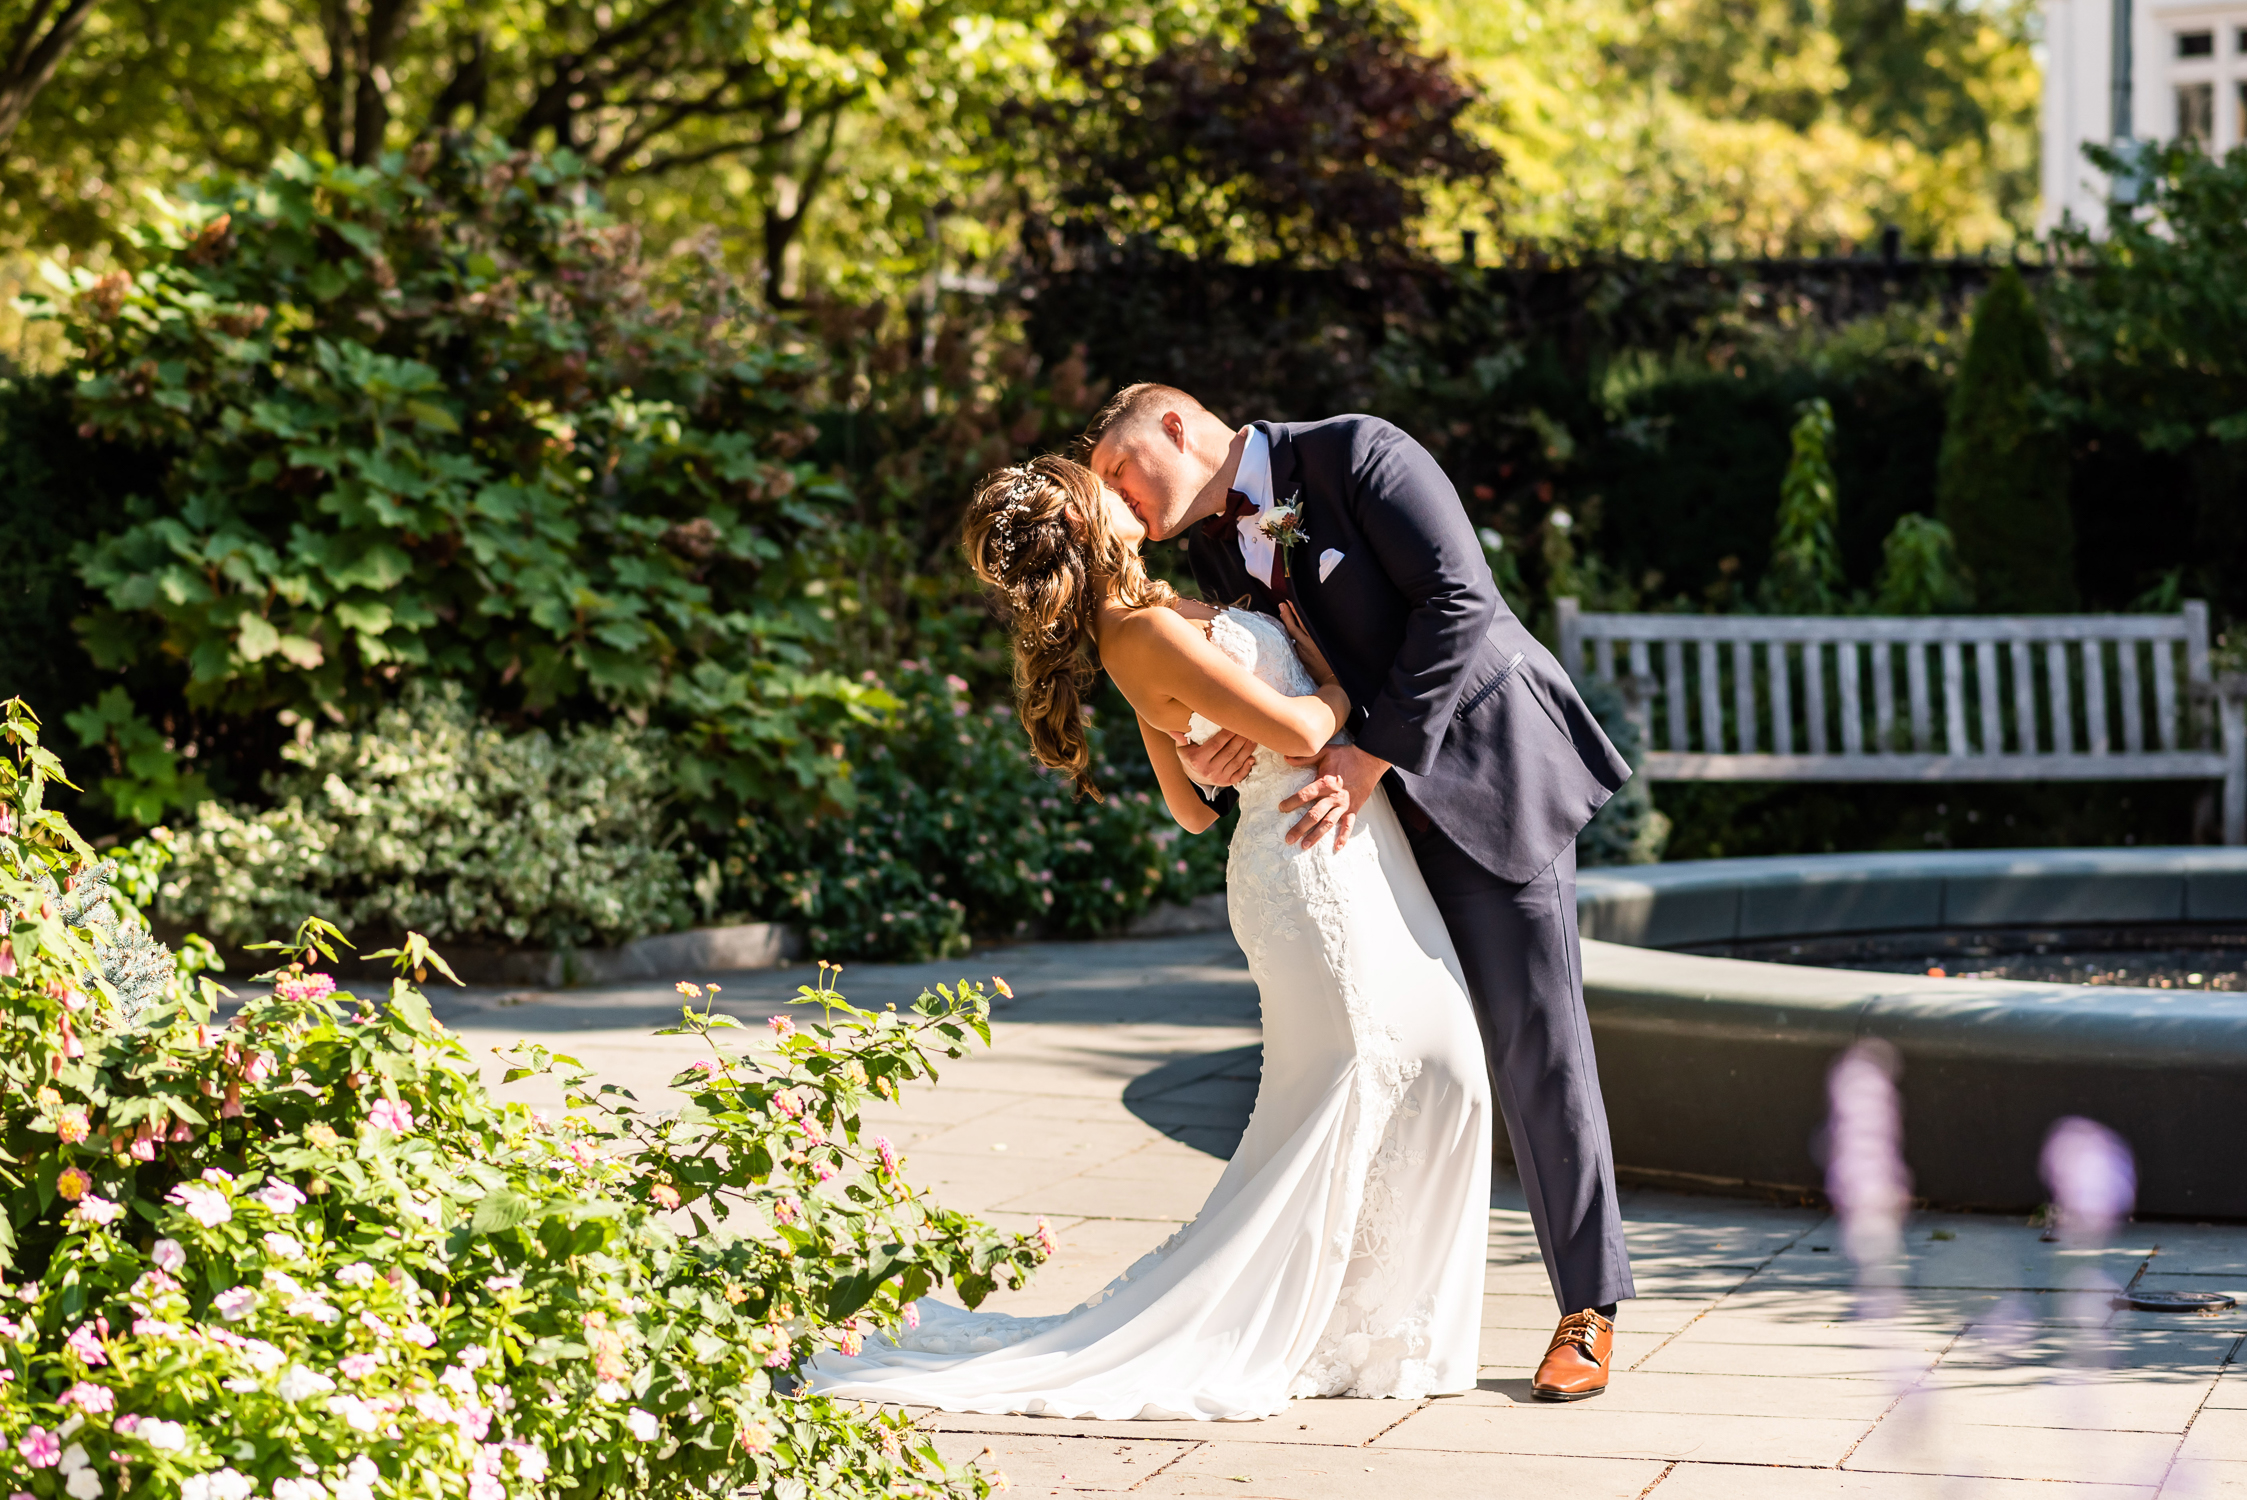 Emma_Cleary_Photo_and_Video_wedding_photos_0006